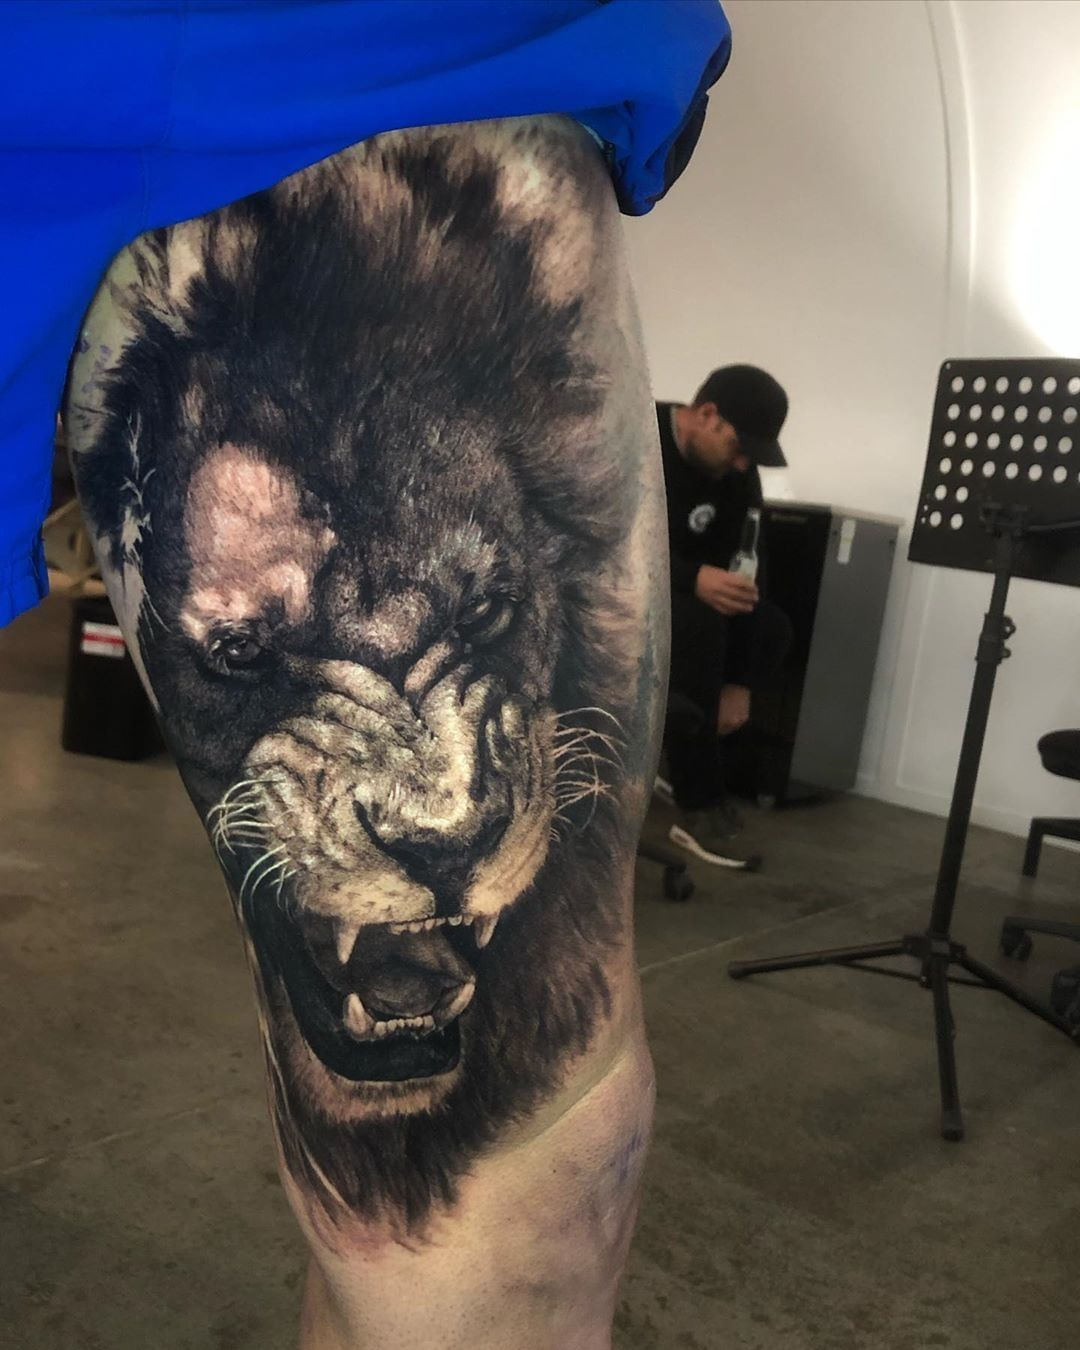 🦁 🙏🏻⚡👏 Lion Artist: @natotattooart Country: NZ ——————————————————————— ⚜️FOLLOW⚜️ @skingiants for daily tattoos! Sharing only the best tattoos Artists on instagram —————————————————————— #realismtattoo #blackandgreytattoo #skingiants #tattooist #tattoolove #tattooed #tattoosleeve #tattoodesign #tattoolover #tattooworld #tattoosofinstagram #tattoolovers #tattooleg #inked #tat #tats